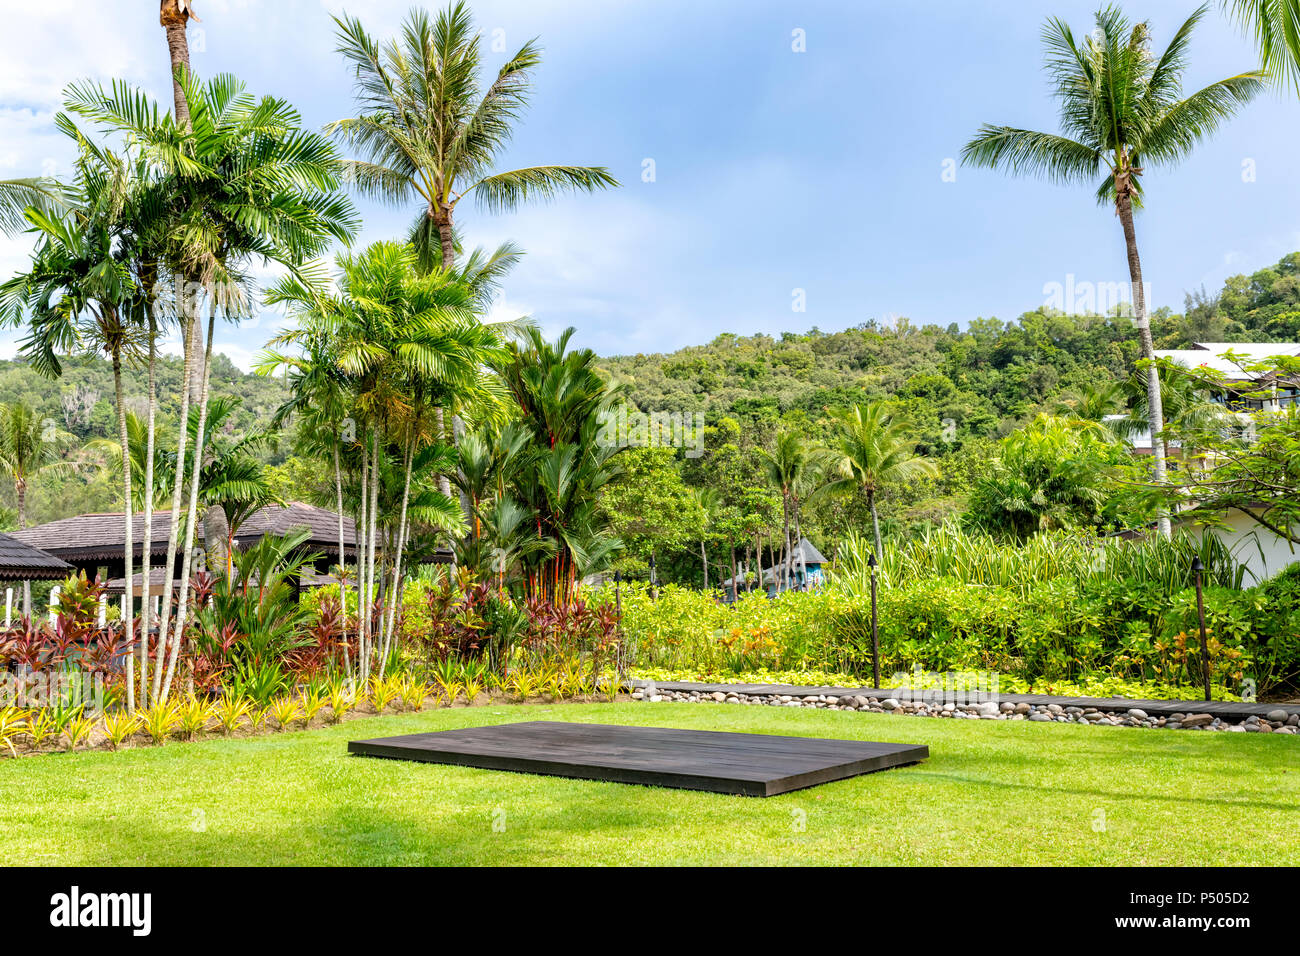 Palm trees and other exotic vegetation against a blue sky in Borneo, Malaysia - Stock Image